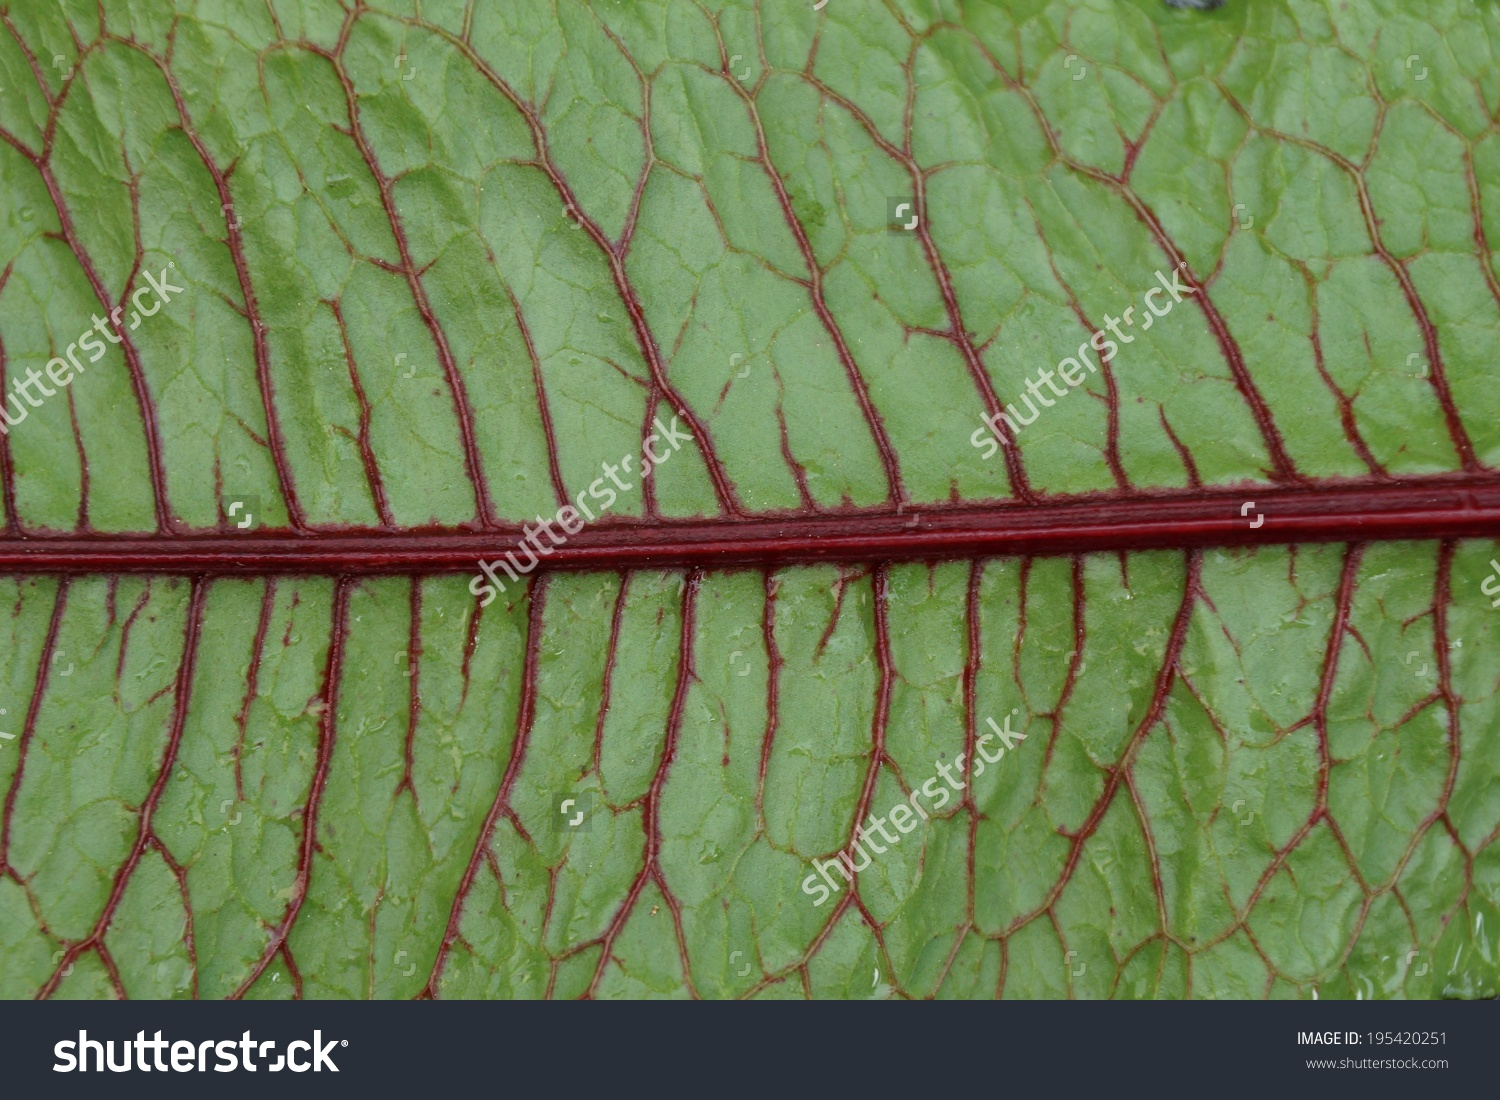 Green Leaves With Dark Red Veins Of The Blood Dock Red Sorrel.